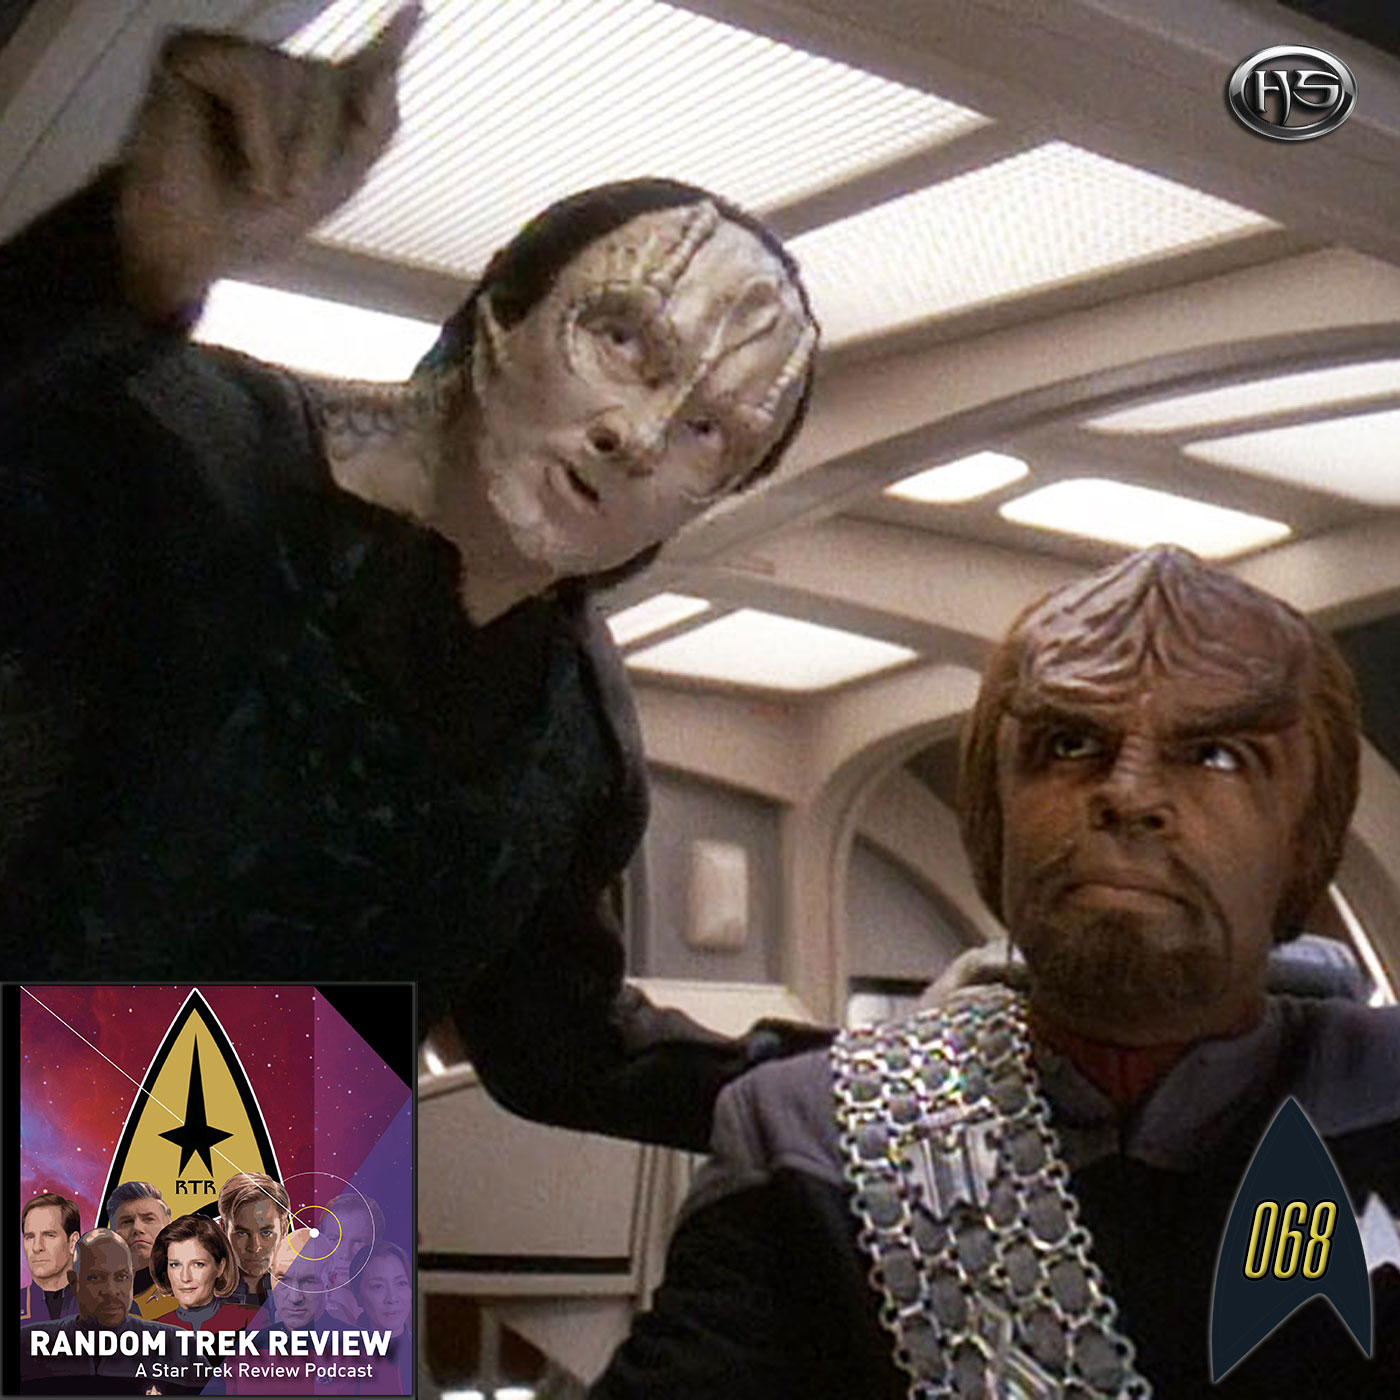 Random Trek Review Episode 68